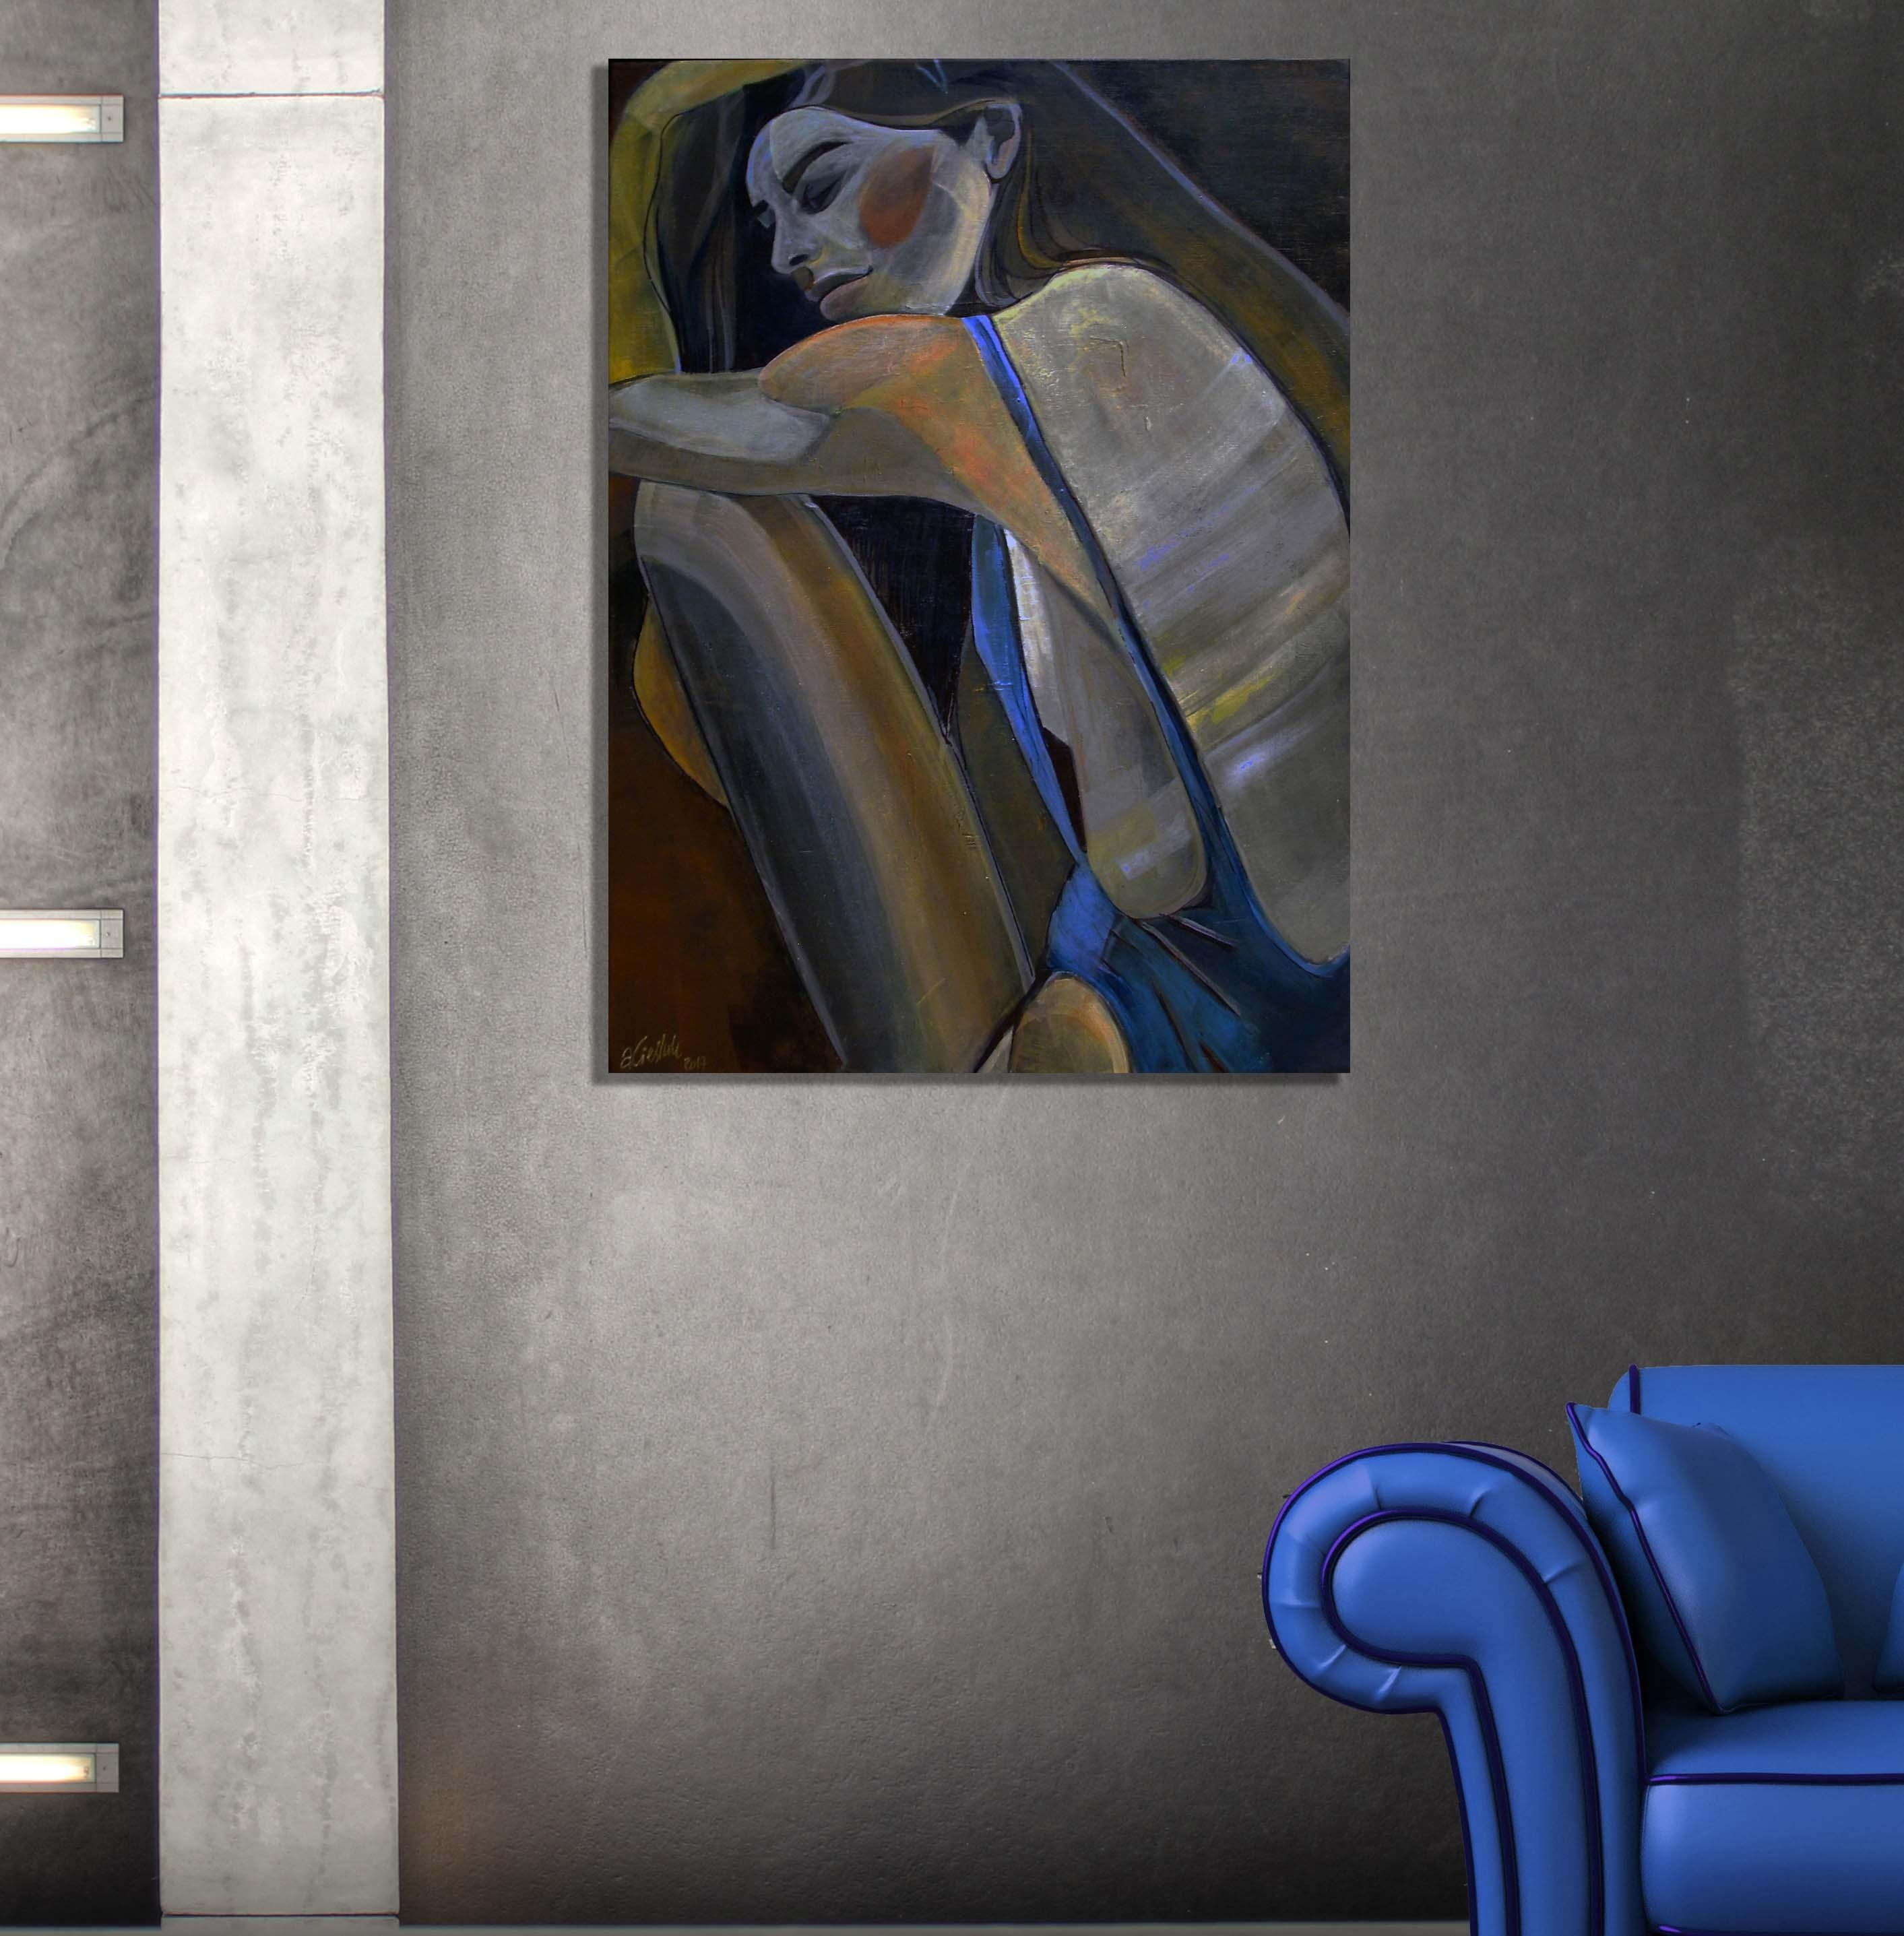 Sensual 1: Unique Painting Of A Sexy Girl In Swimsuit Throughout Sensual Wall Art (Image 10 of 20)